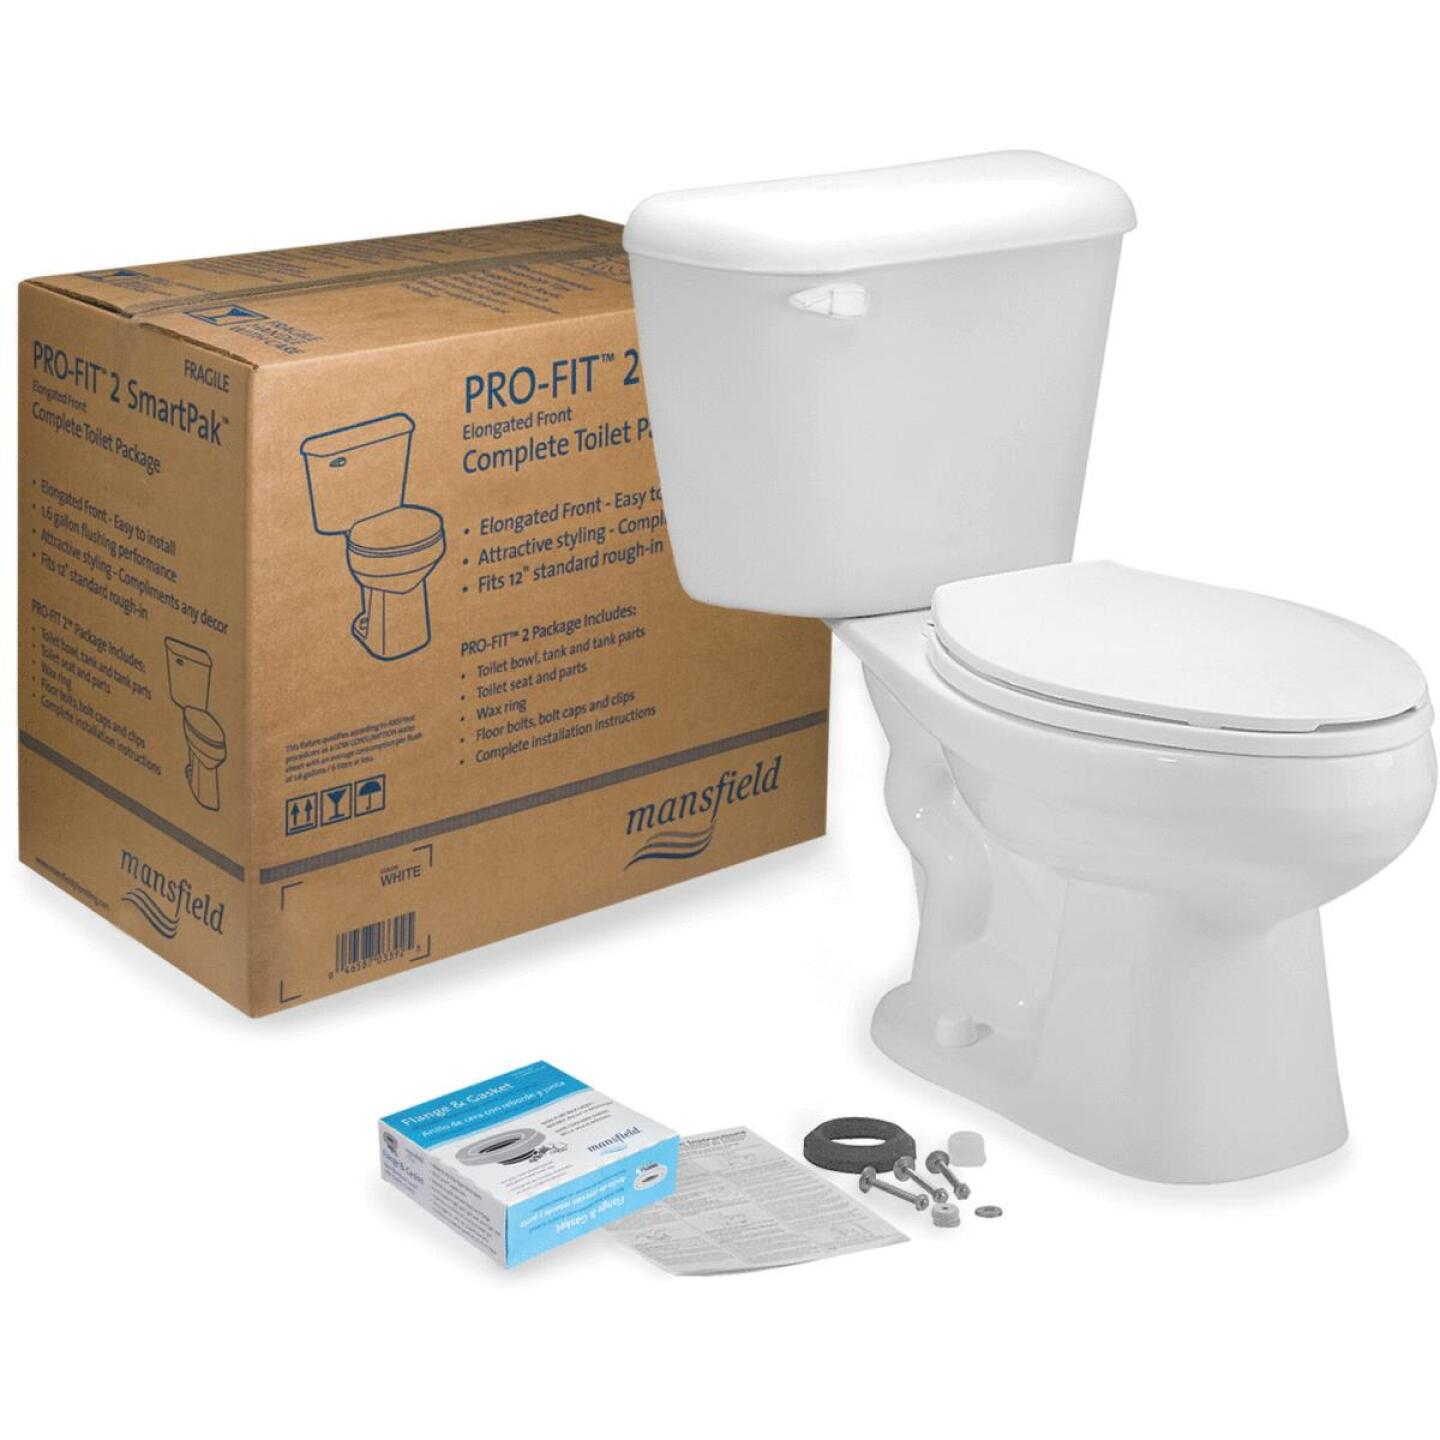 Mansfield Pro-Fit 2-128 White Elongated Bowl 1.28 GPF Complete Toilet Image 1